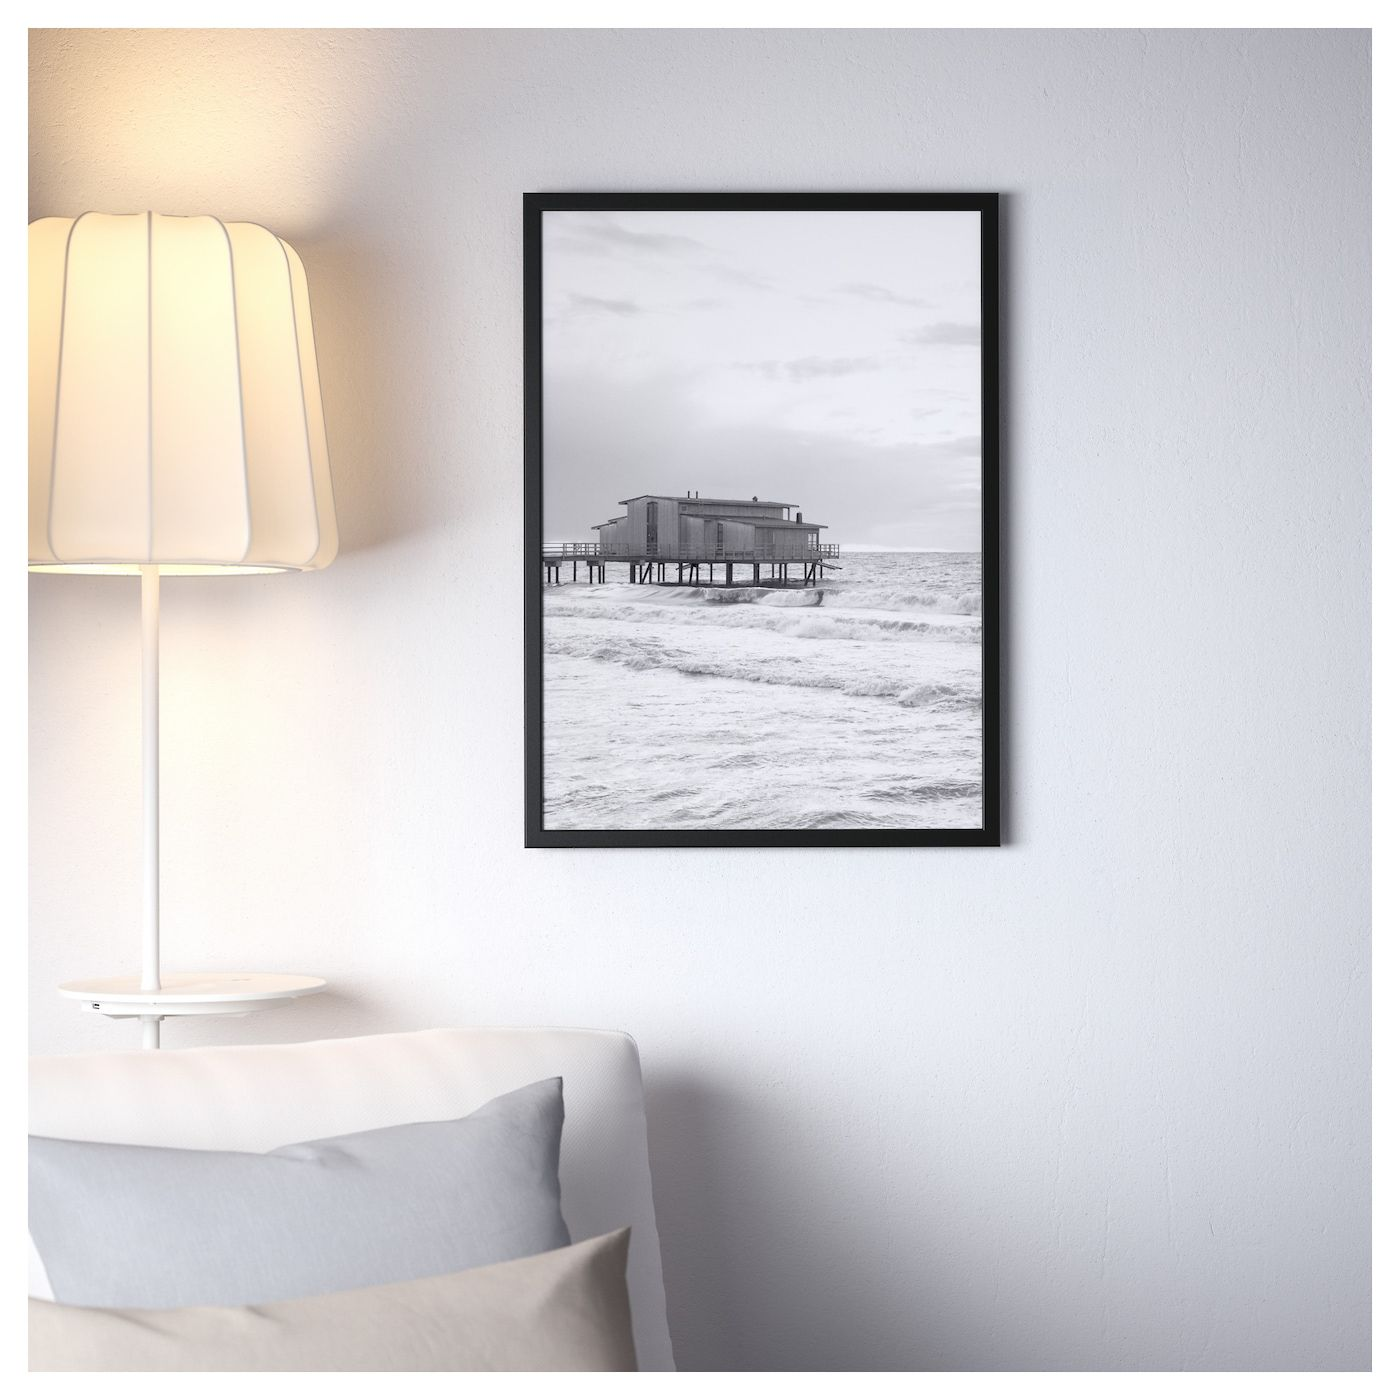 Fiskbo Okvir Crna 50x70 Cm With Images Decorating With Pictures Ikea Home Decor Decals